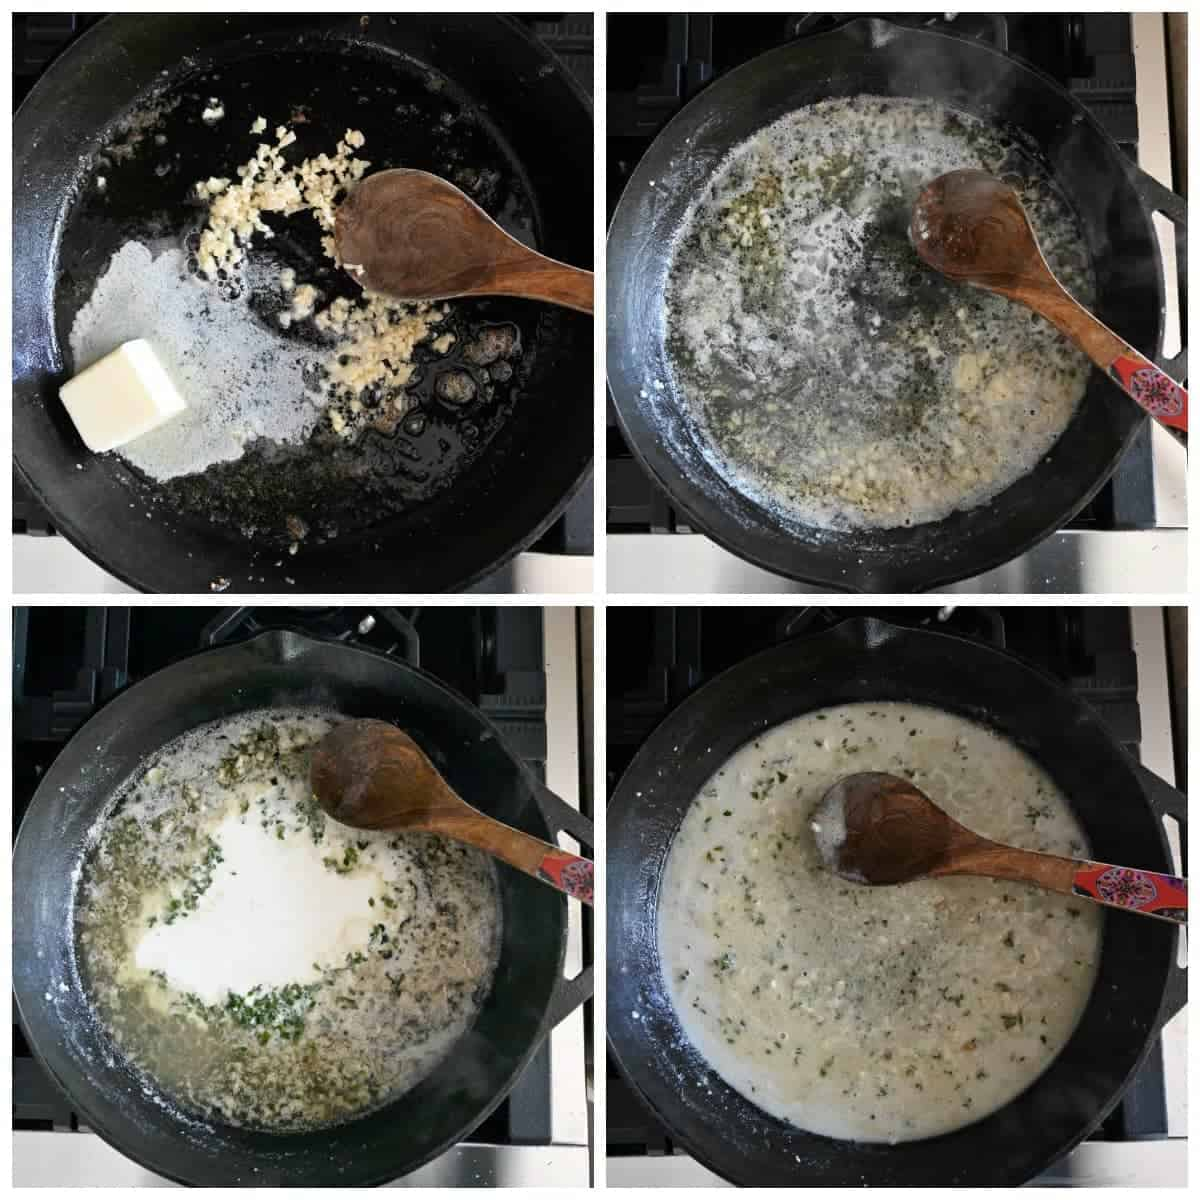 Four process photos. First one, butter and garlic melted in the skillet. Second one, white wine added in the skillet. Third one, heavy cream added in to the skillet. Fourth one, a spoon stirring the sauce. ,